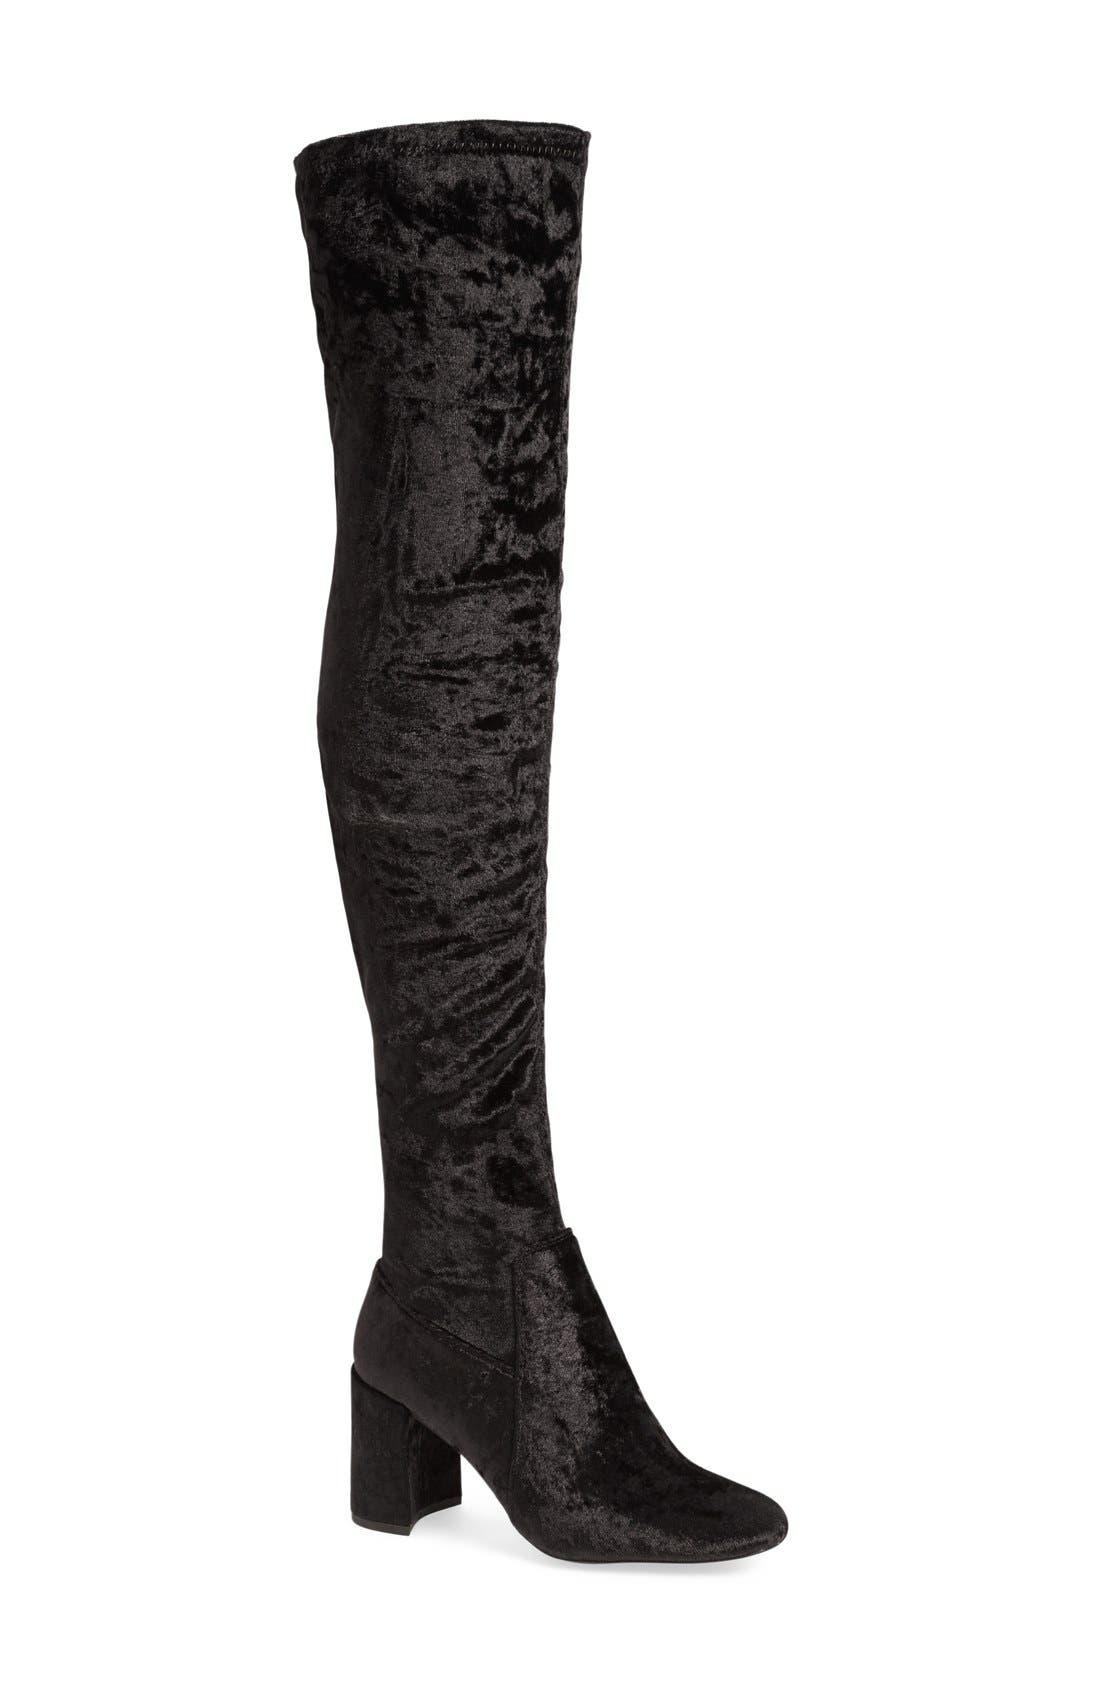 Main Image - Jeffrey Campbell 'Cienega' Over the Knee Boot (Women)